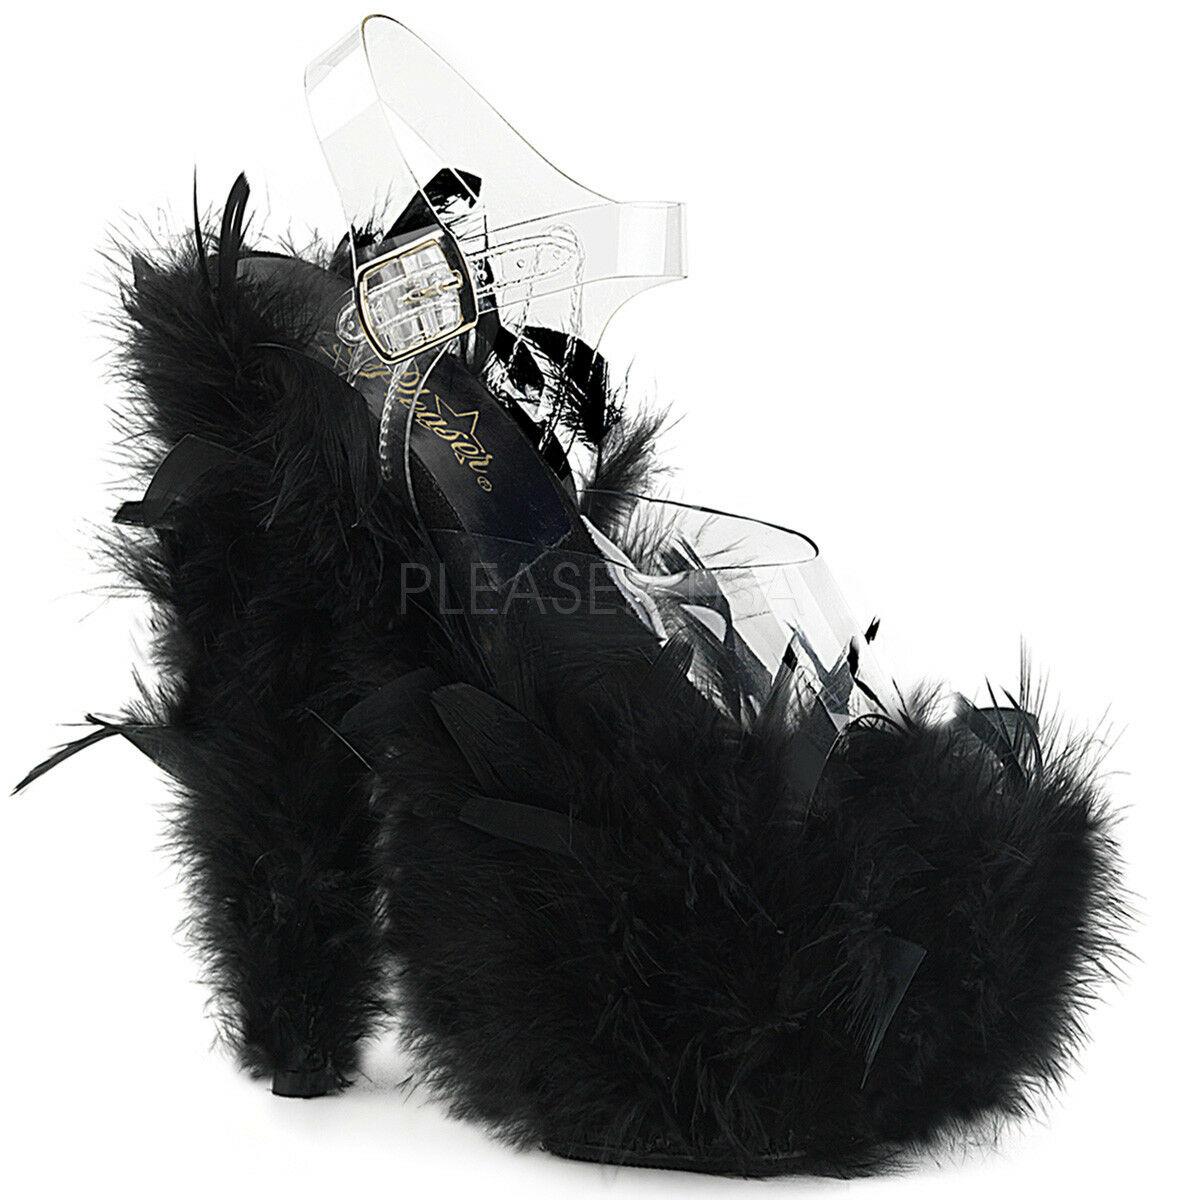 più preferenziale Pleaser Pleaser Pleaser ADORE-708F Donna  Clear nero Marabou Feather Heels Platforms Sandals  offerta speciale